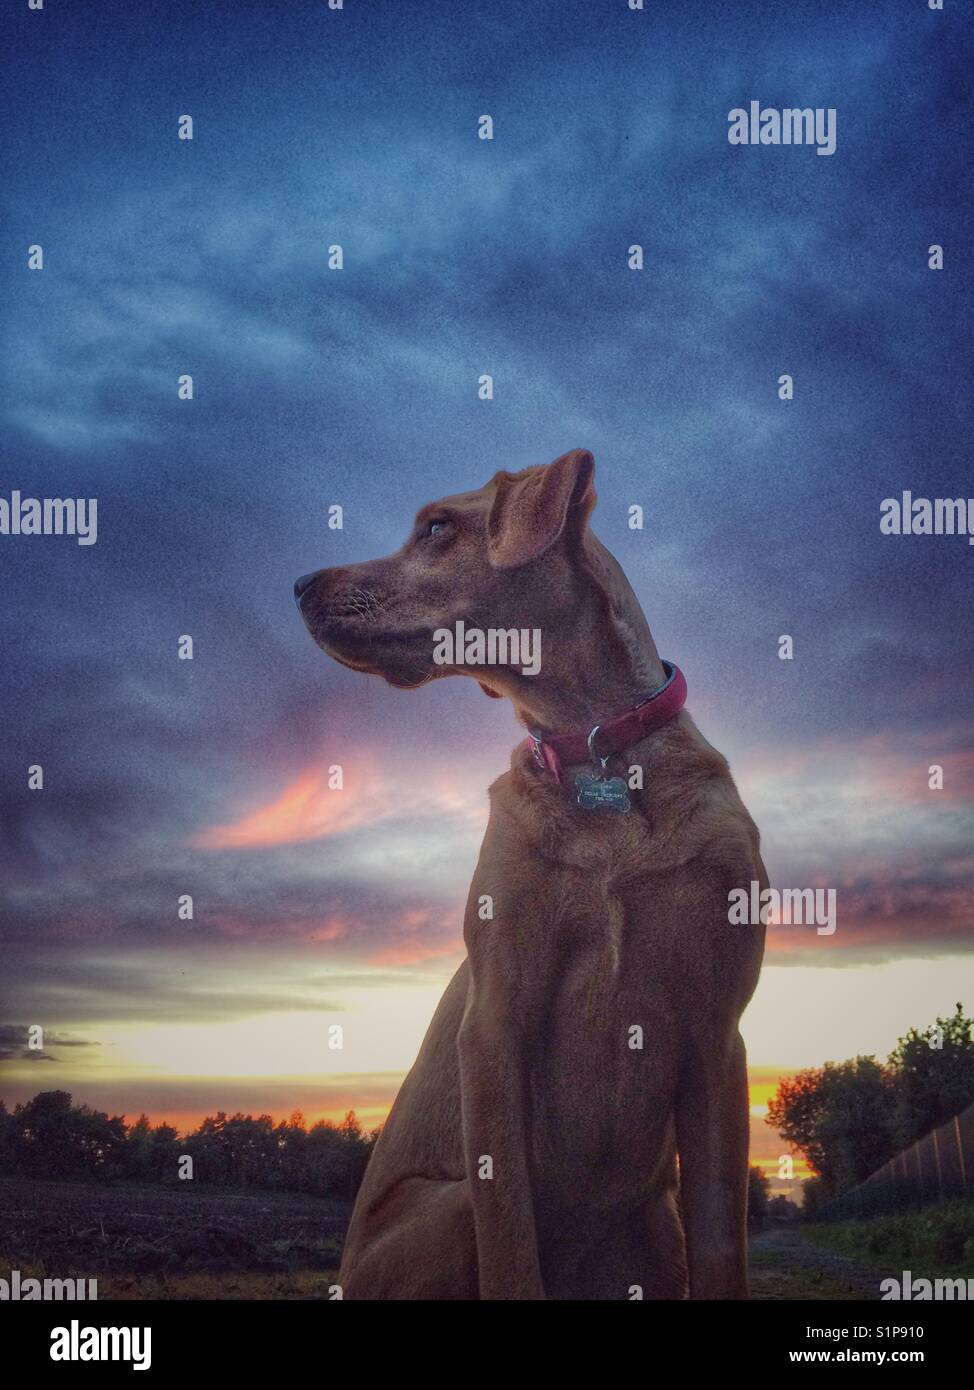 A yellow labrador retriever looking regal and dignified with a colourful sunset and dramatic clouds behind - Stock Image